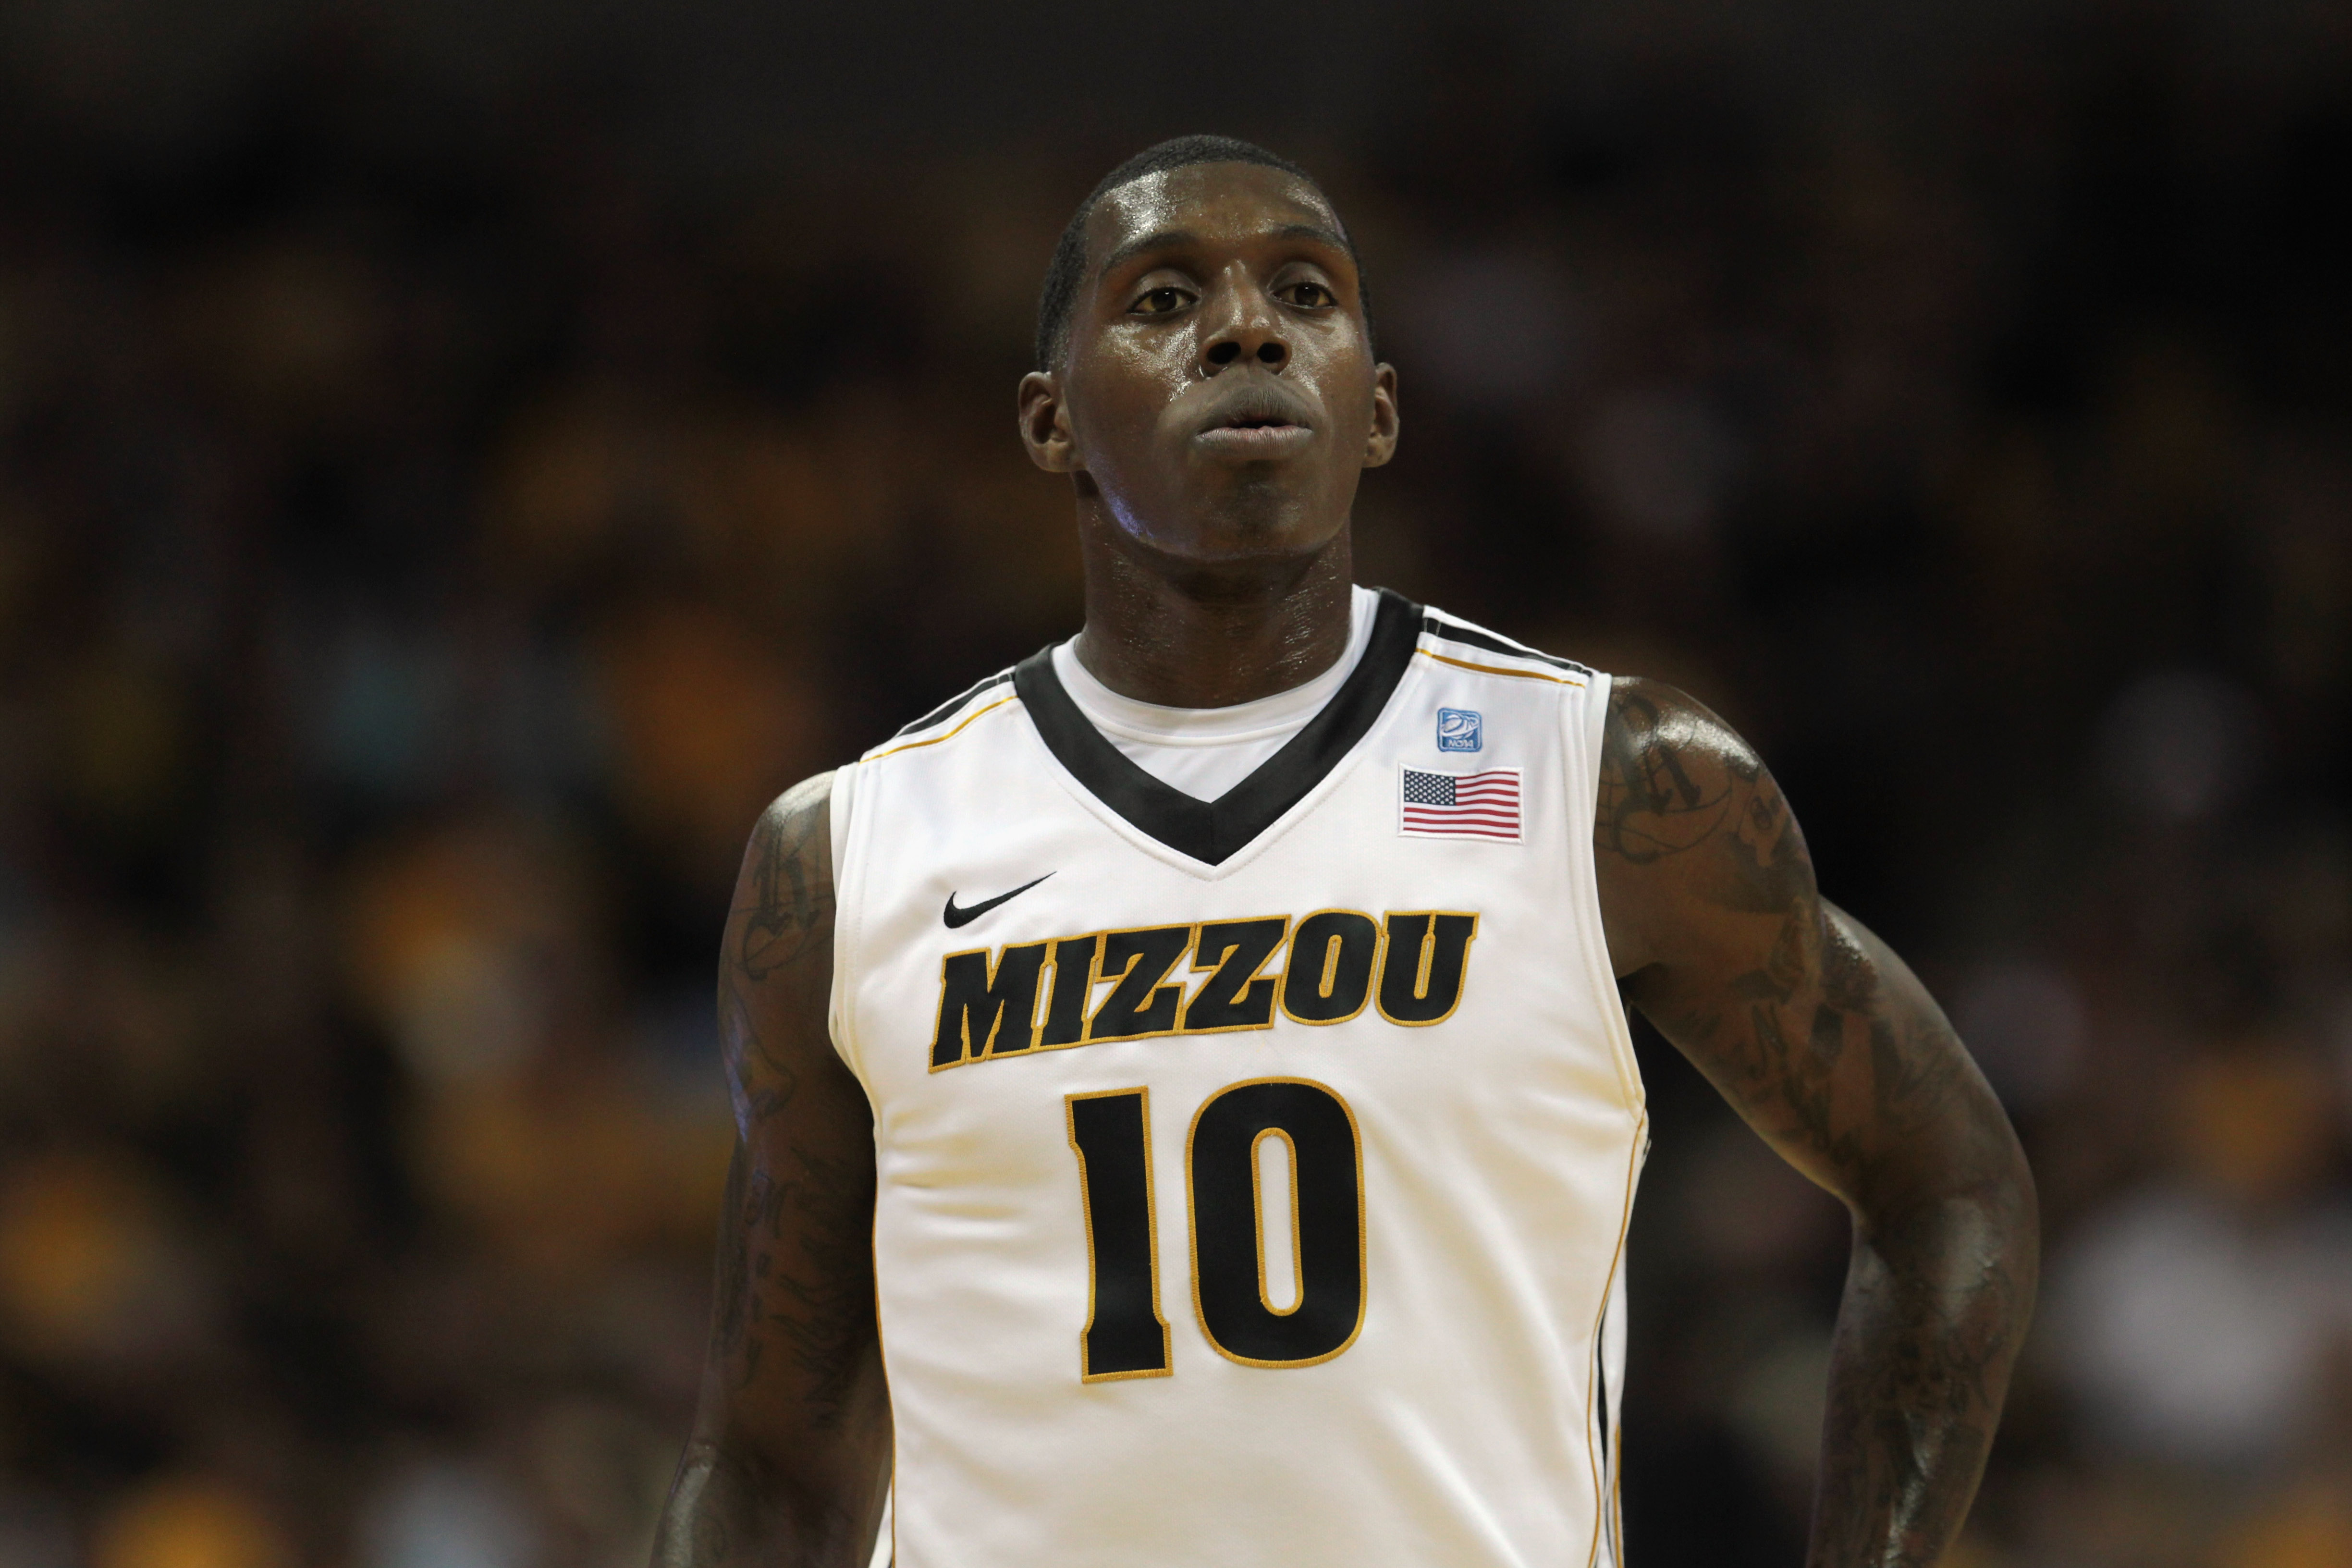 COLUMBIA, MO - DECEMBER 08:  Ricardo Ratliffe #10 of the Missouri Tigers in action during the game against the Vanderbilt Commodores on December 8, 2010 at Mizzou Arena in Columbia, Missouri.  (Photo by Jamie Squire/Getty Images)